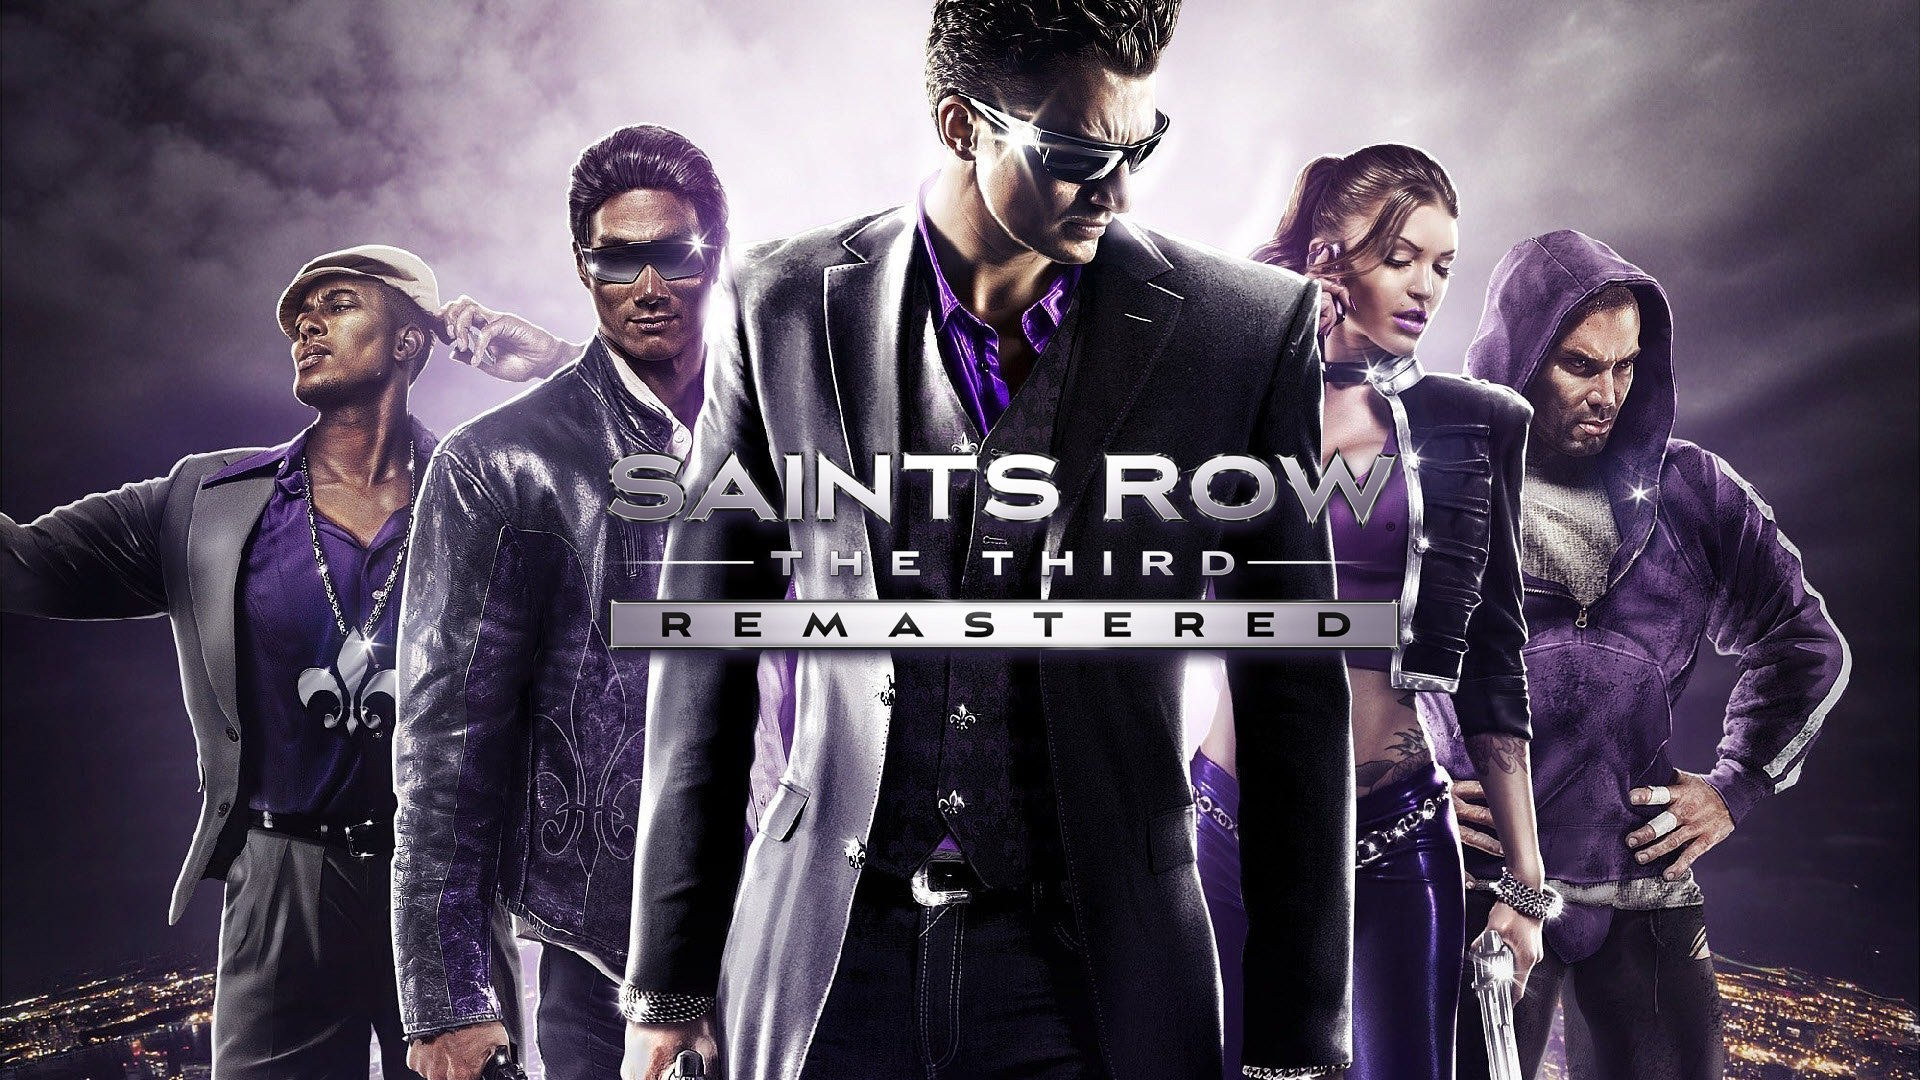 Saints Row: The Third Remastered Minimum ve Önerilen Sistem Gereksinimleri